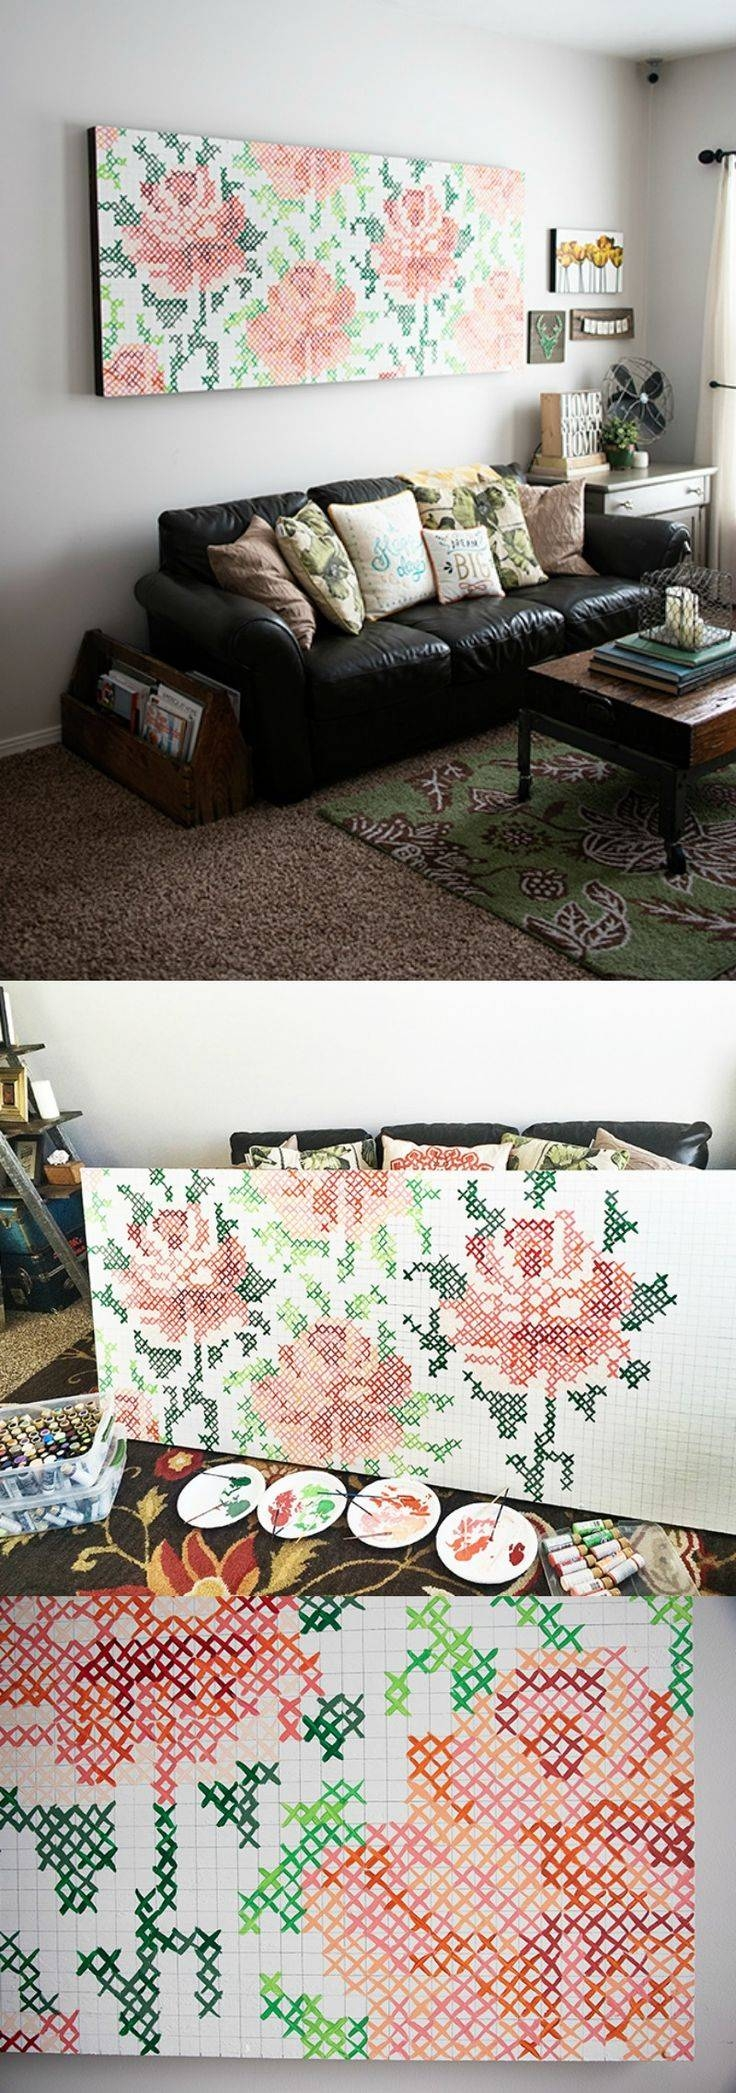 25+ Unique Diy Wall Art Ideas On Pinterest | Diy Wall Decor, Diy Throughout Latest Pinterest Diy Wall Art (View 9 of 25)